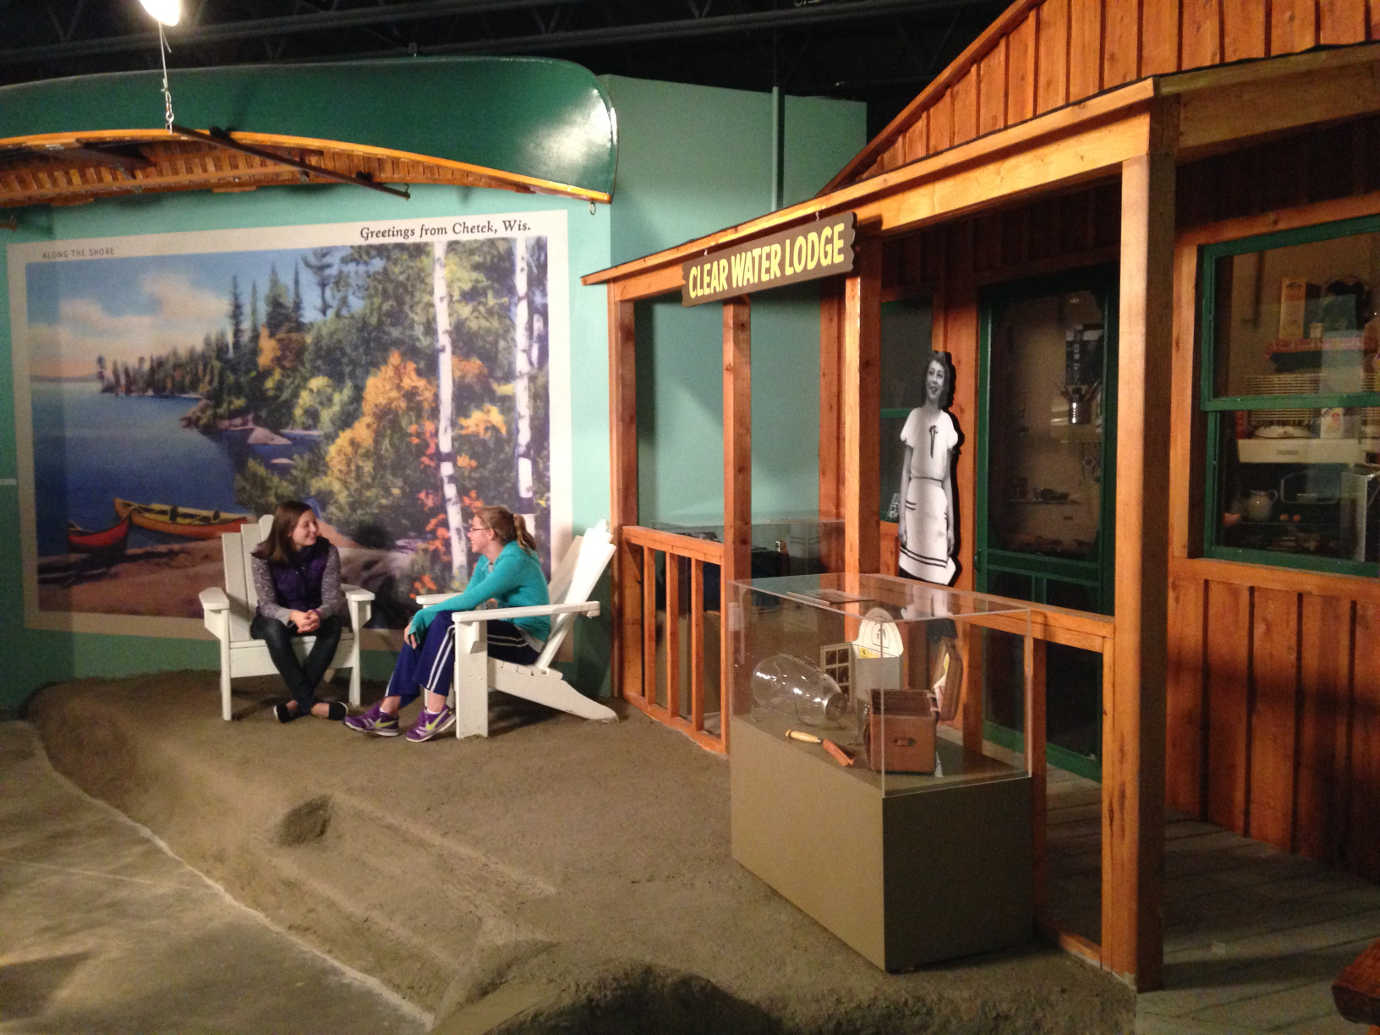 *Changing Currents: Reinventing the Chippewa Valley* includes a number of interactive exhibits exploring the region's history. Image courtesy of the Chippewa Valley Museum.